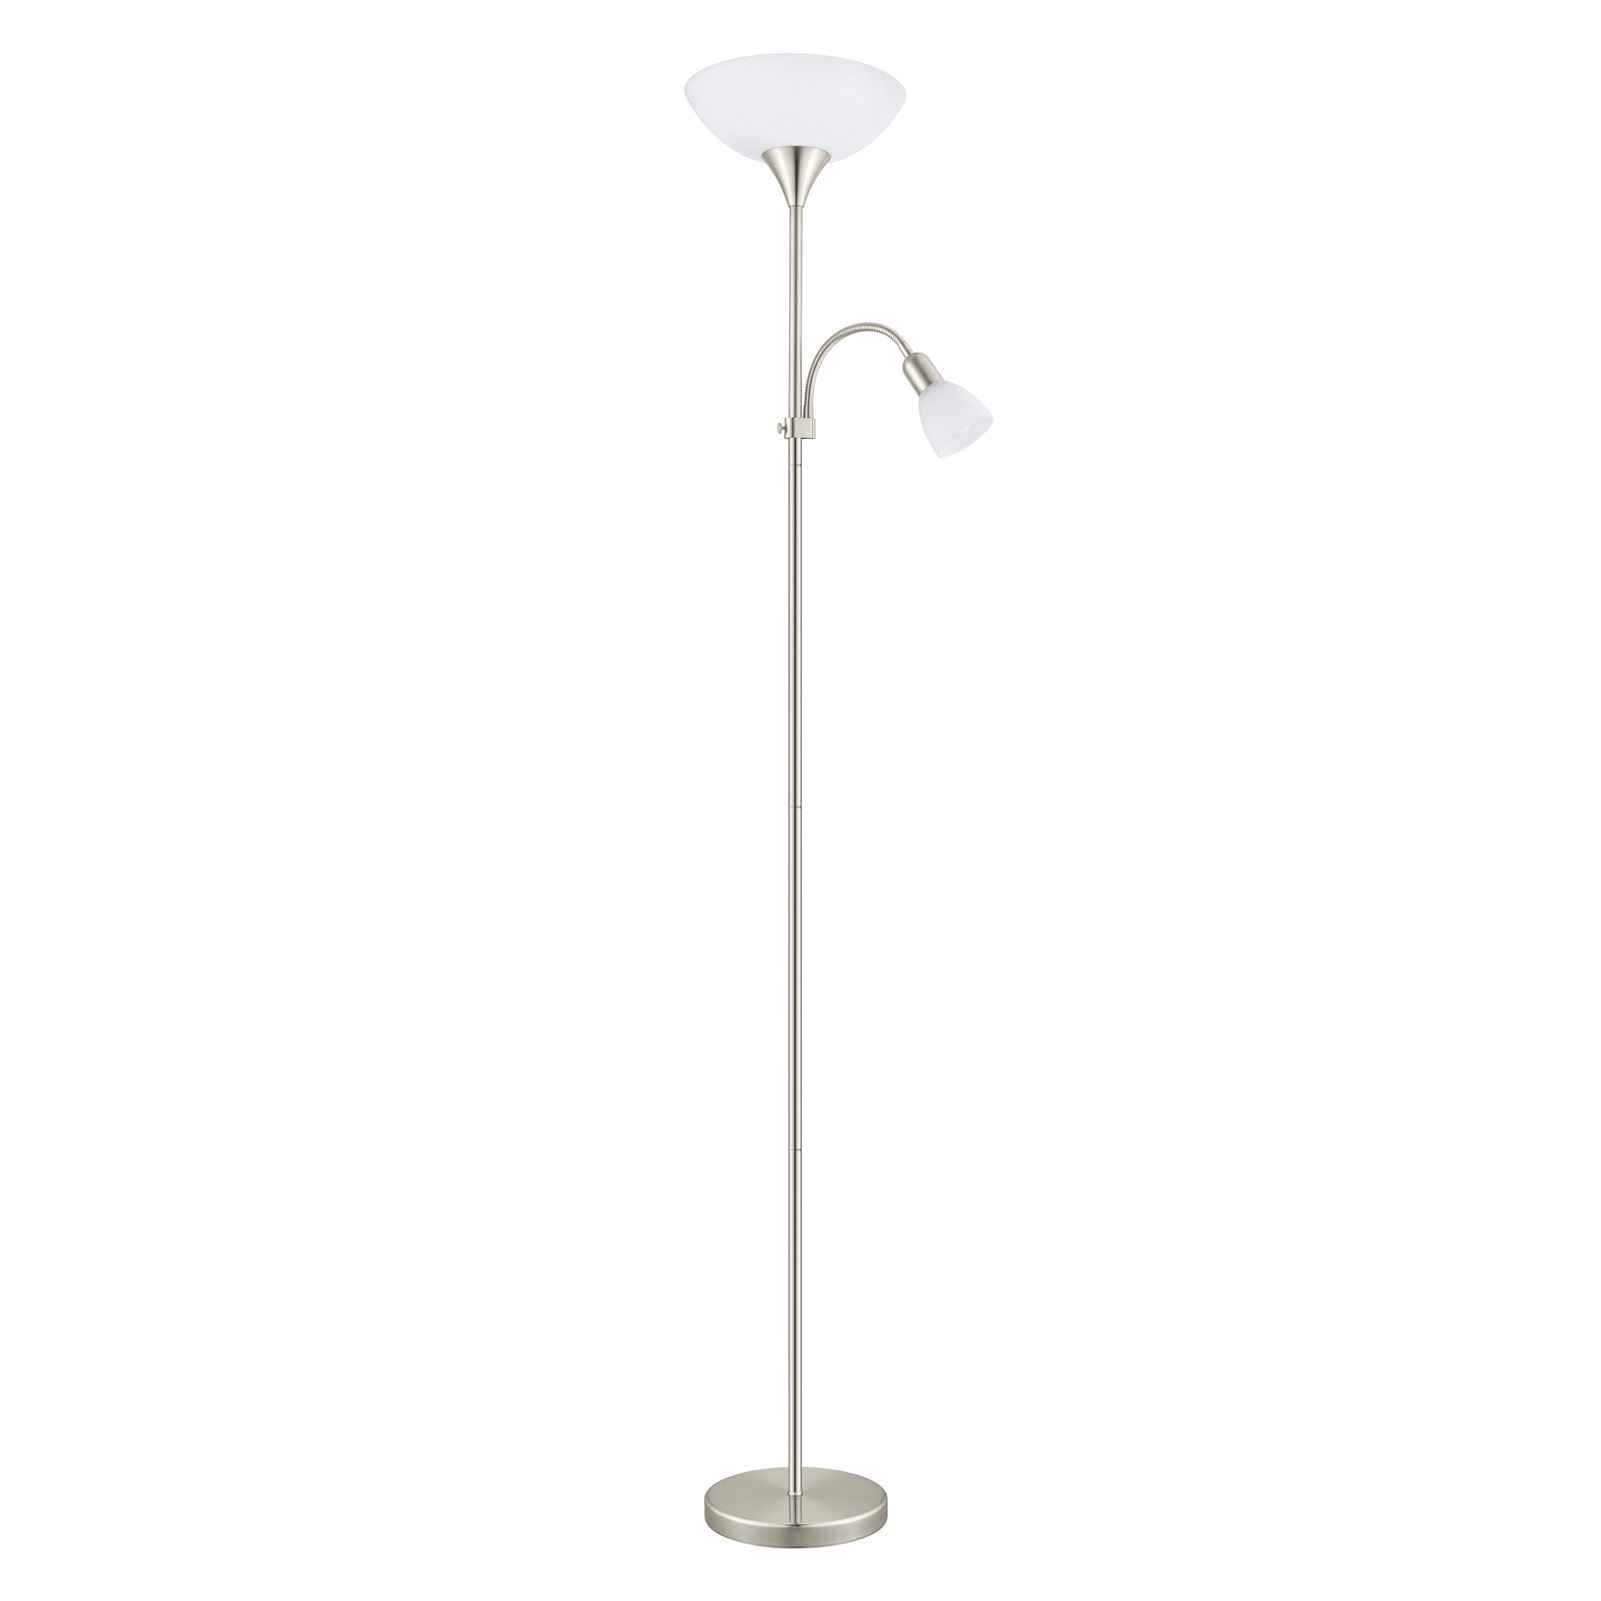 Up Floor Lamp Plastic Glass White Shade With In-Line Switch